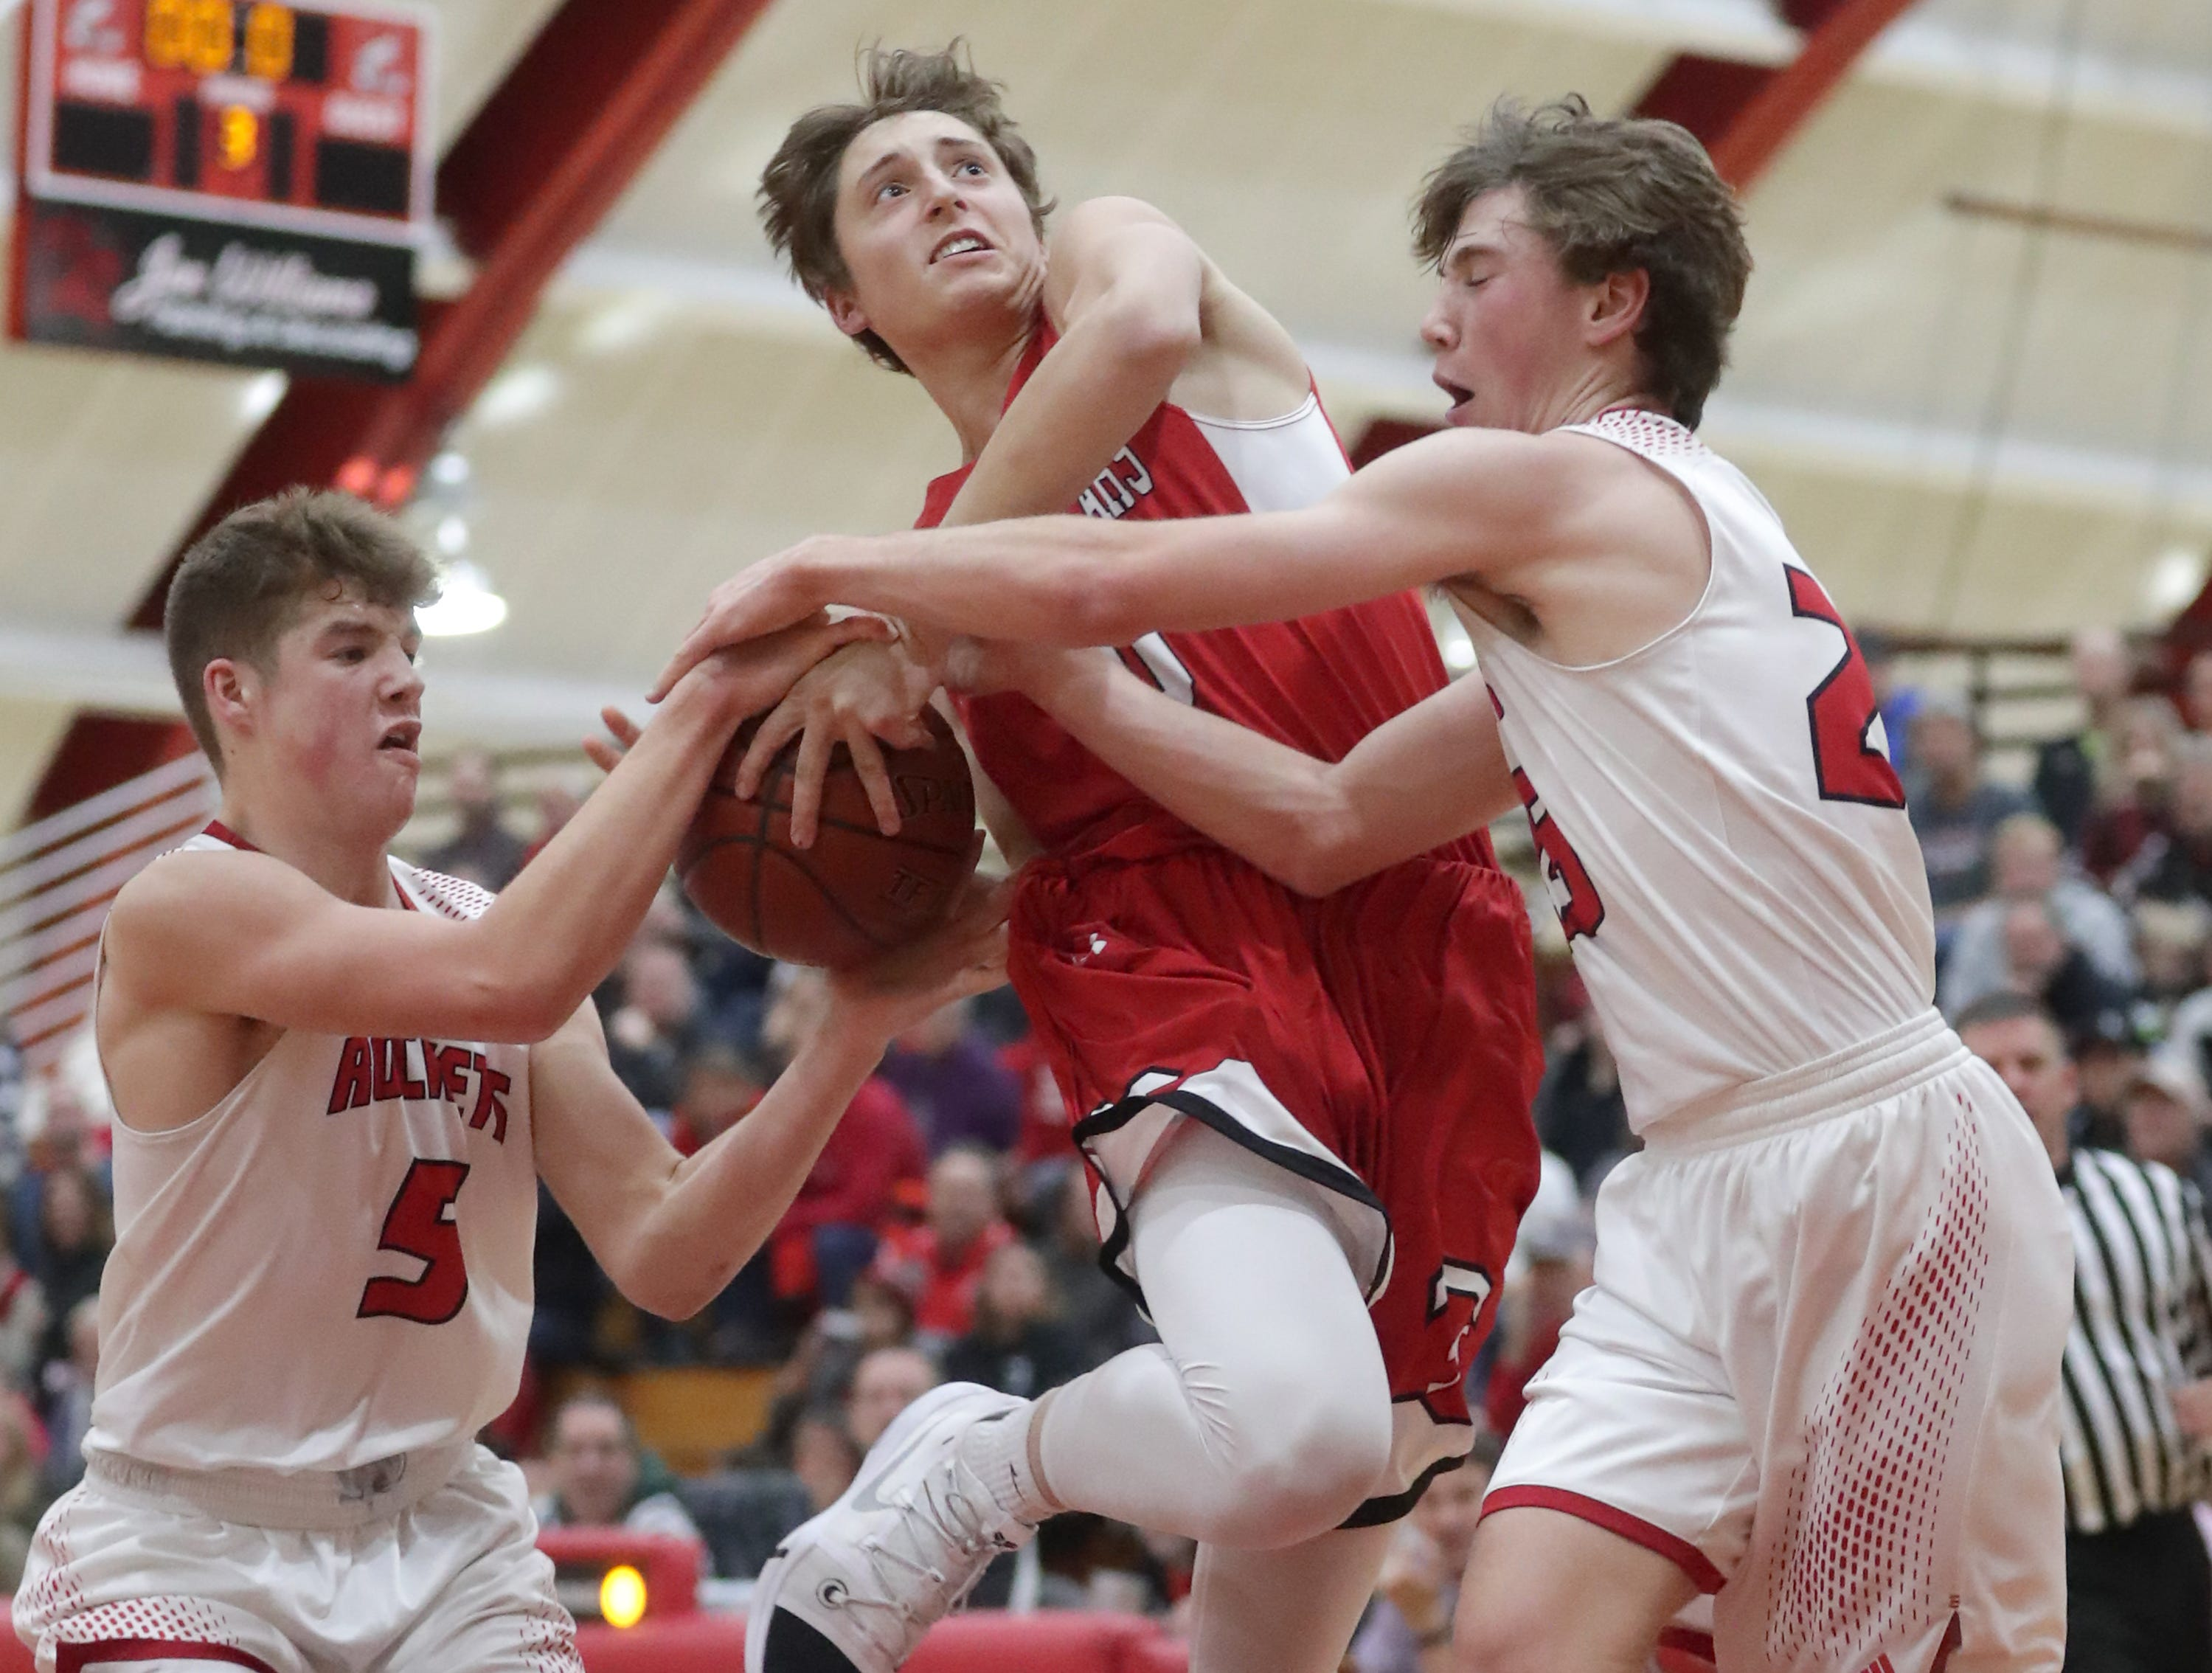 Hortonville High School's #10 Mason Thiel against Neenah High School's #5 Max Klesmit and #25 Bryce Henderson during their Fox Valley Association boys basketball game on Friday, November 30, 2018, in Neenah, Wis. Neenah defeated Hortonville 71 to 67 in overtime.